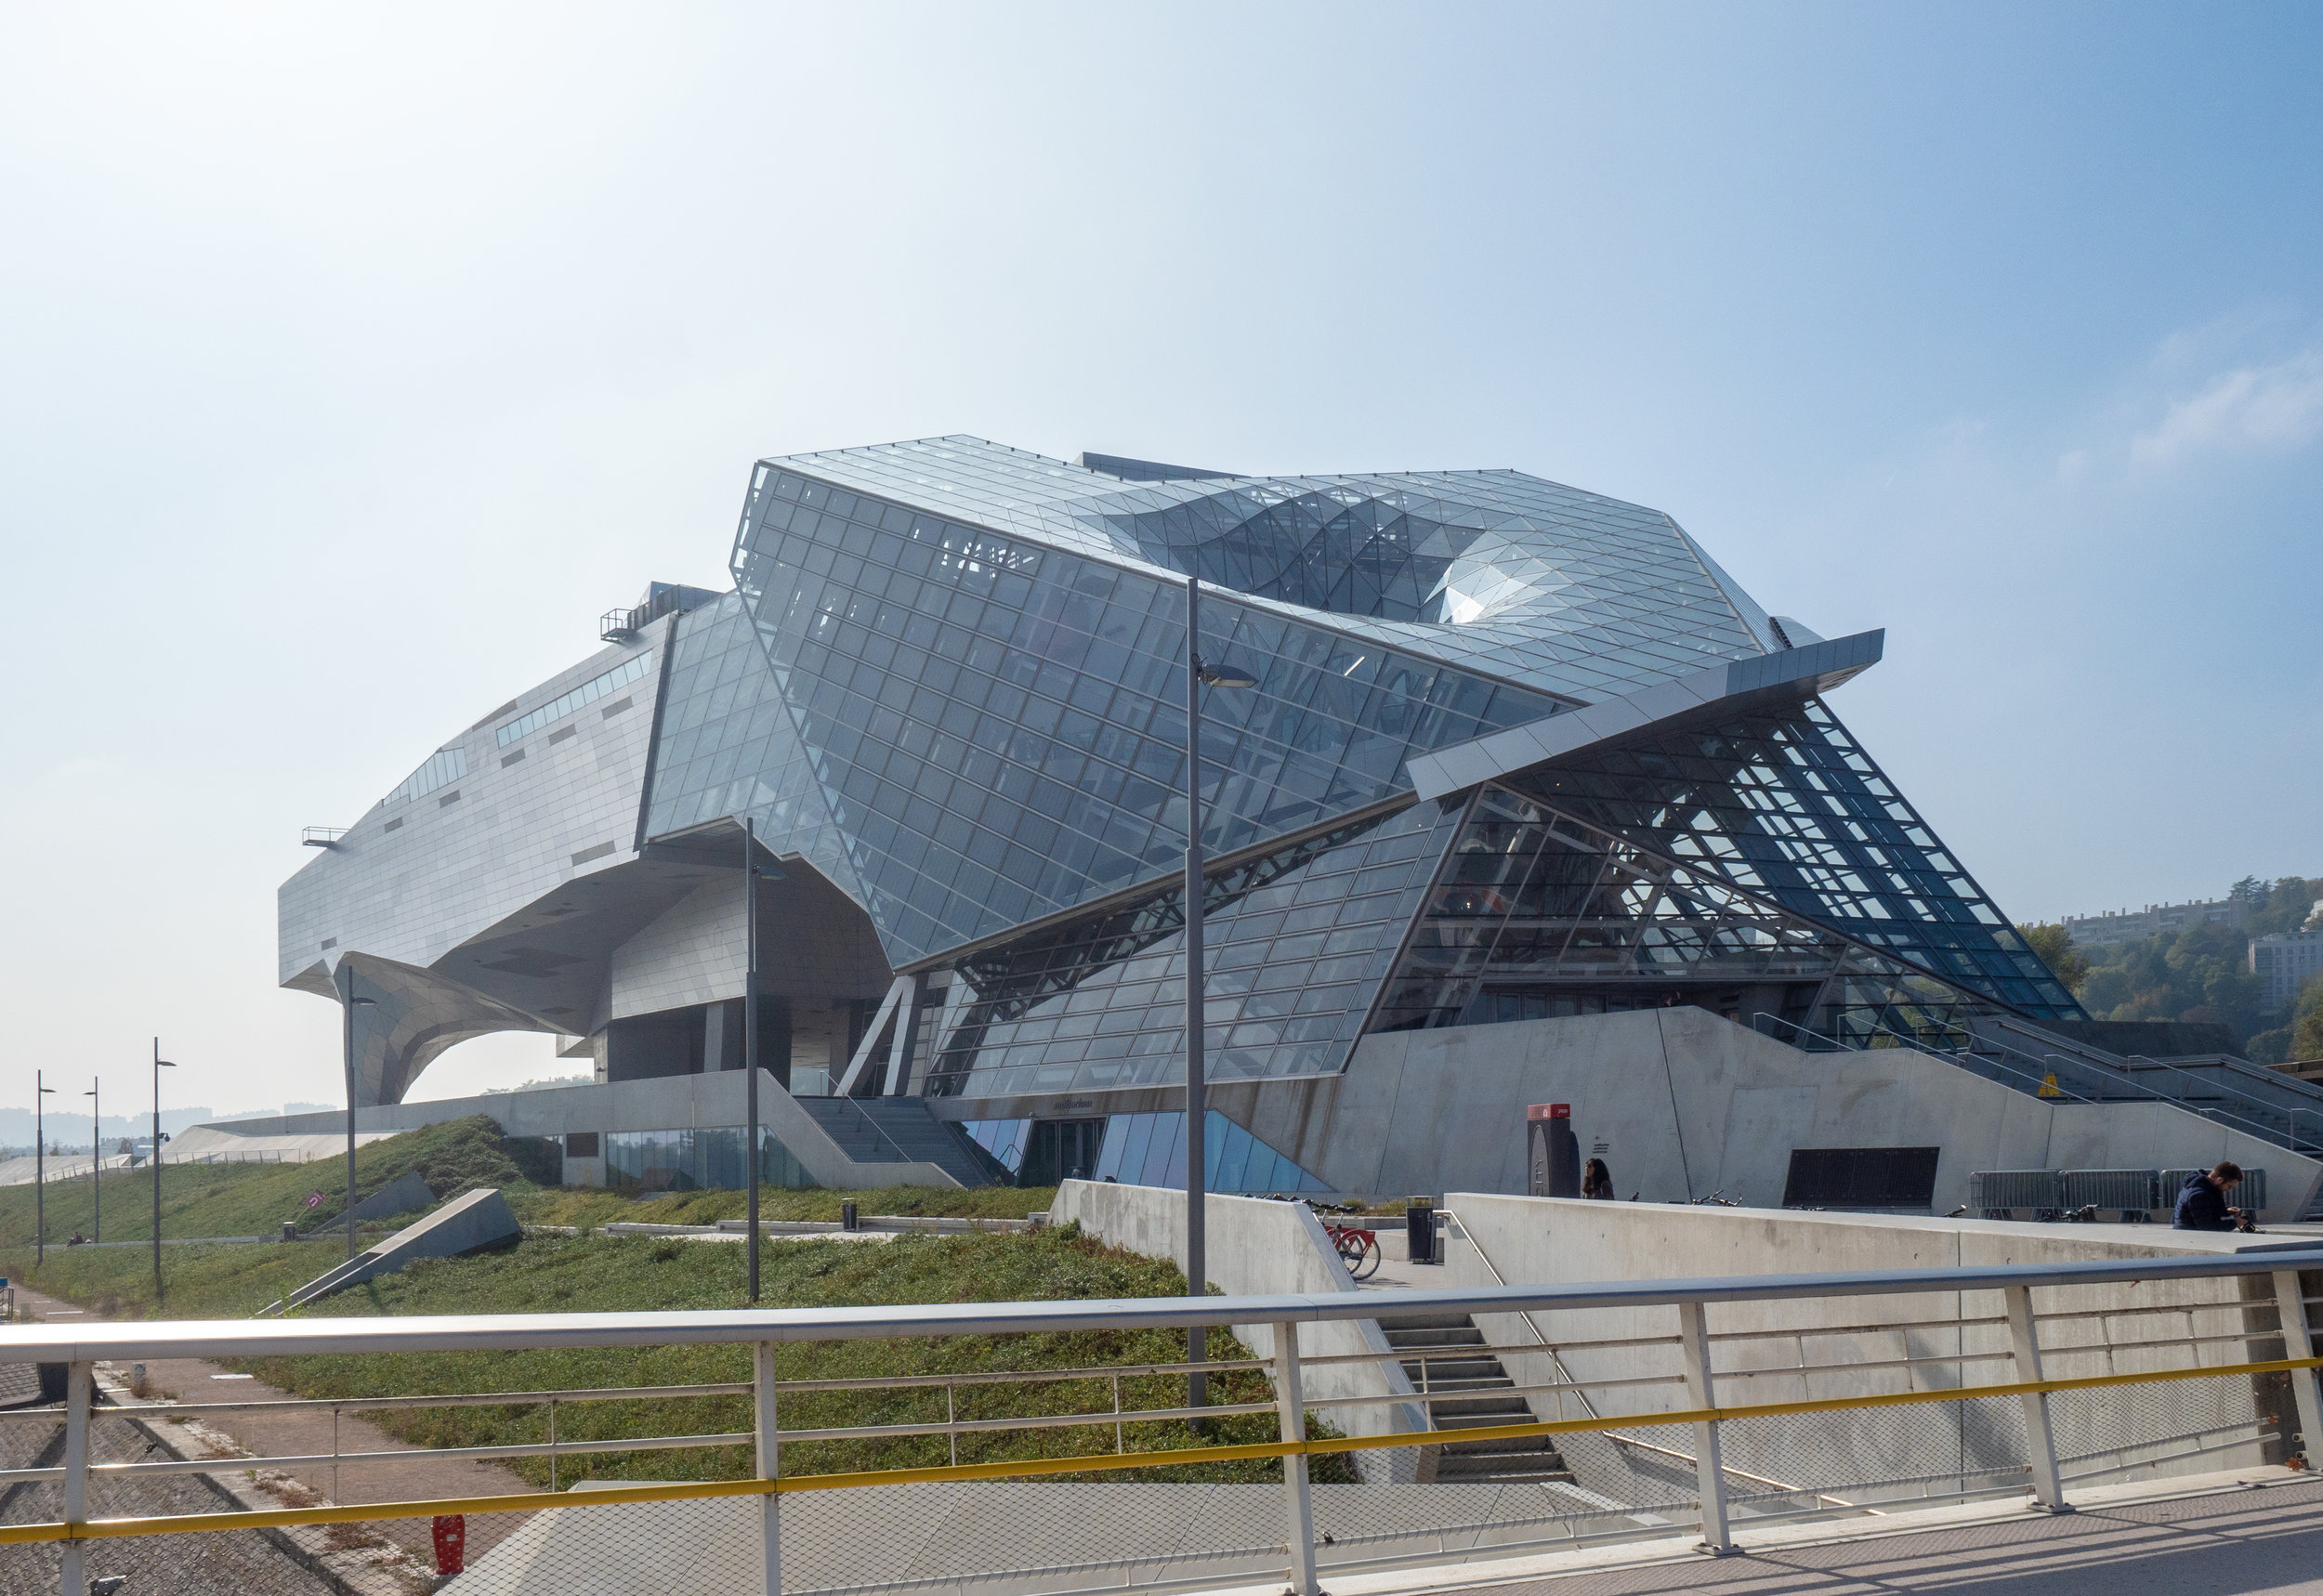 WTF is going on here? Le Musée des Confluences - Coop Himmelb(l)au. Image Source:  Wikimedia Commons